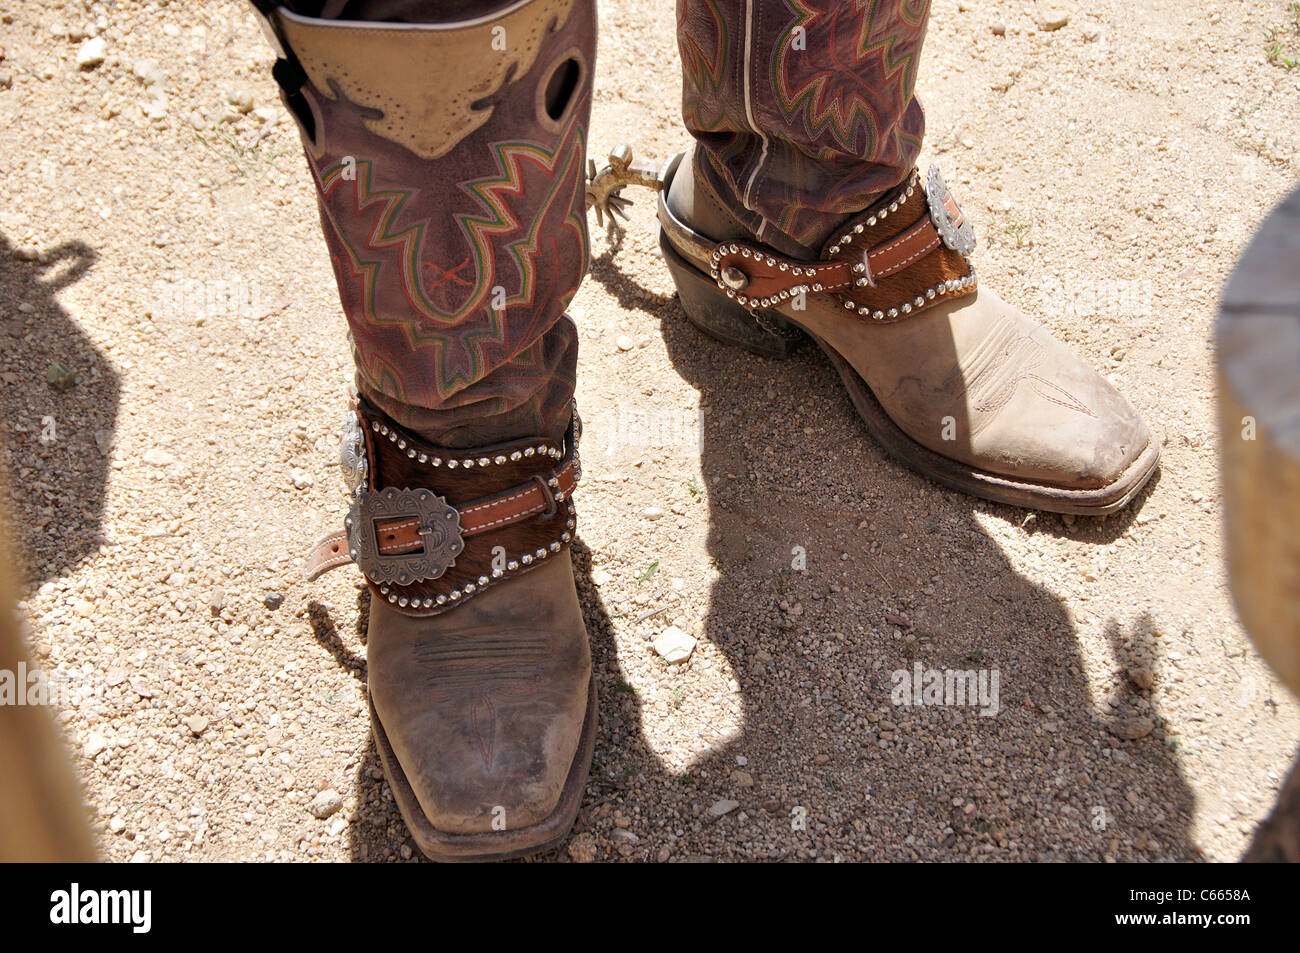 Cowboy boots with spurs - Stock Image